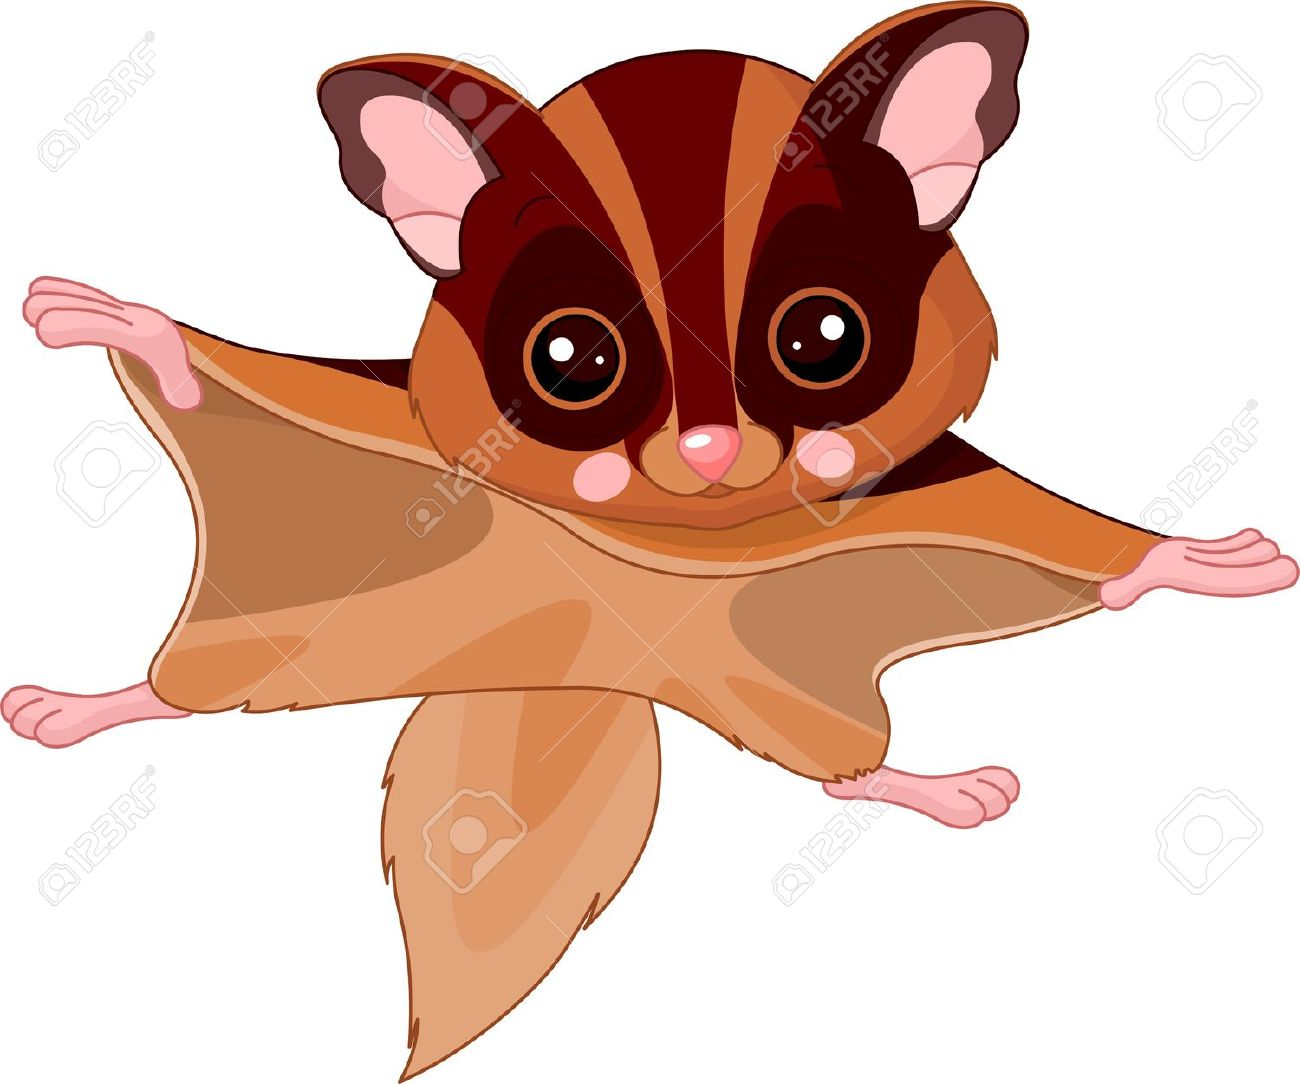 Japanese Dwarf Flying Squirrel clipart #4, Download drawings